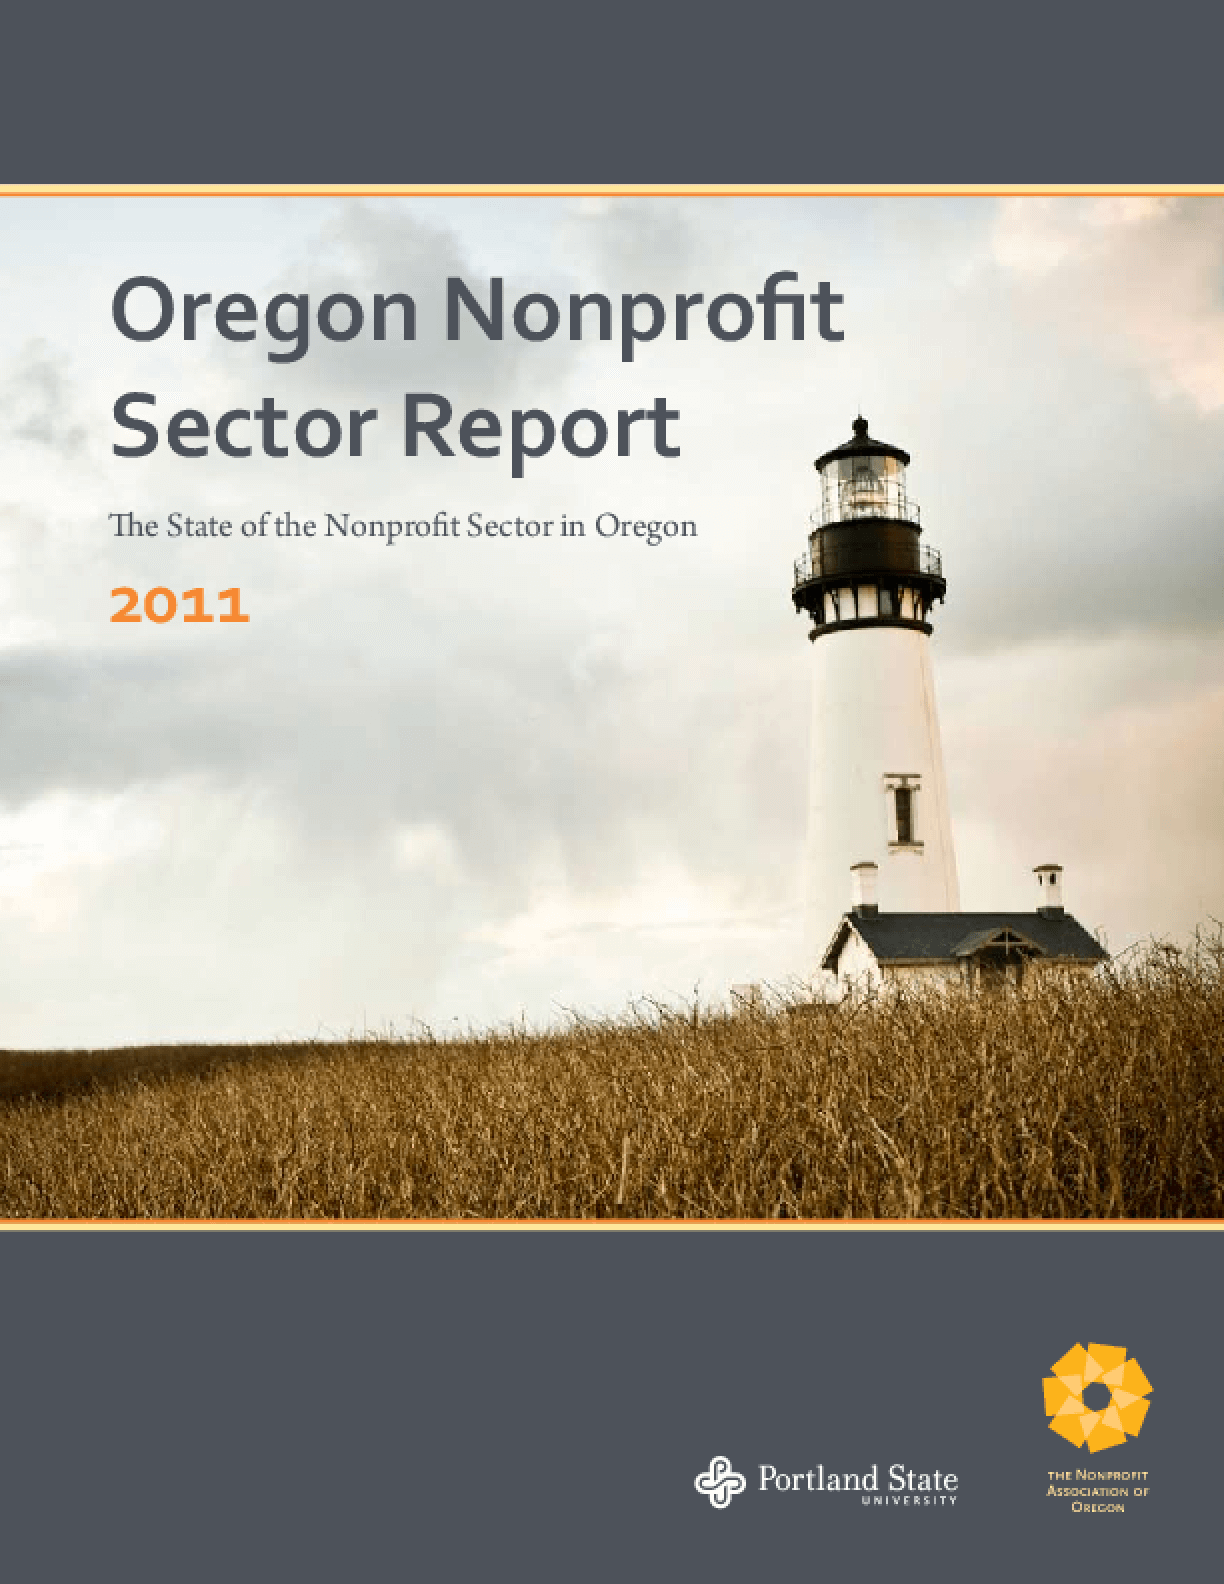 Oregon Nonprofit Sector Report: The State of the Nonprofit Sector in Oregon